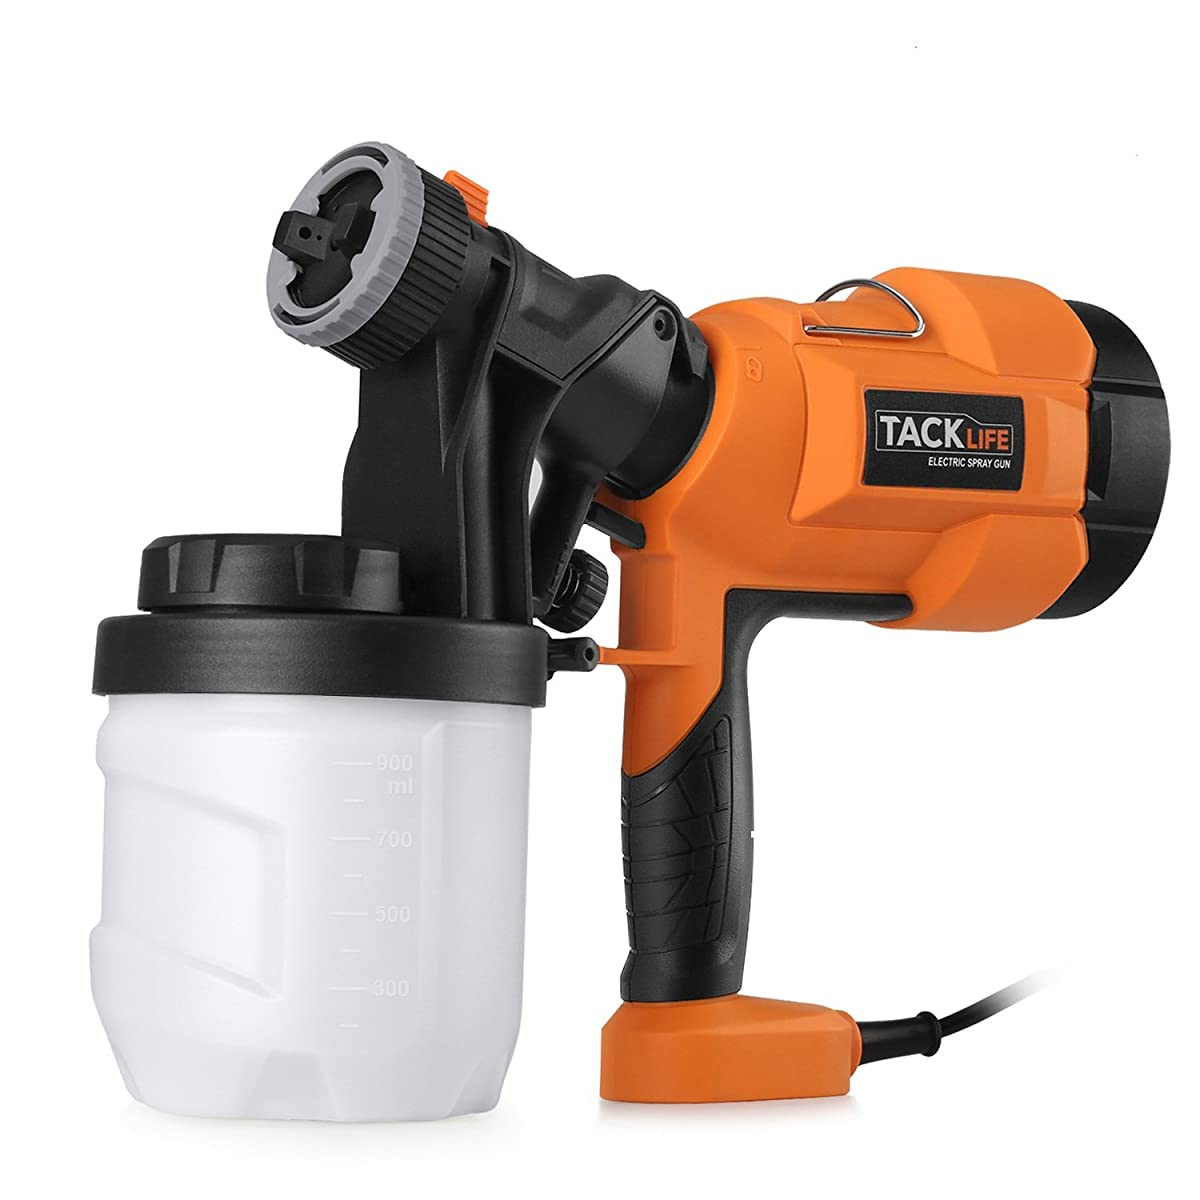 Tacklife SGP15AC Advanced Electric Spray Gun 800ml/min Paint Sprayer with Three Spray Patterns,Three Nozzle Sizes,Adjustable Valve Knob, and Easy Filling 900ml Detachable Container